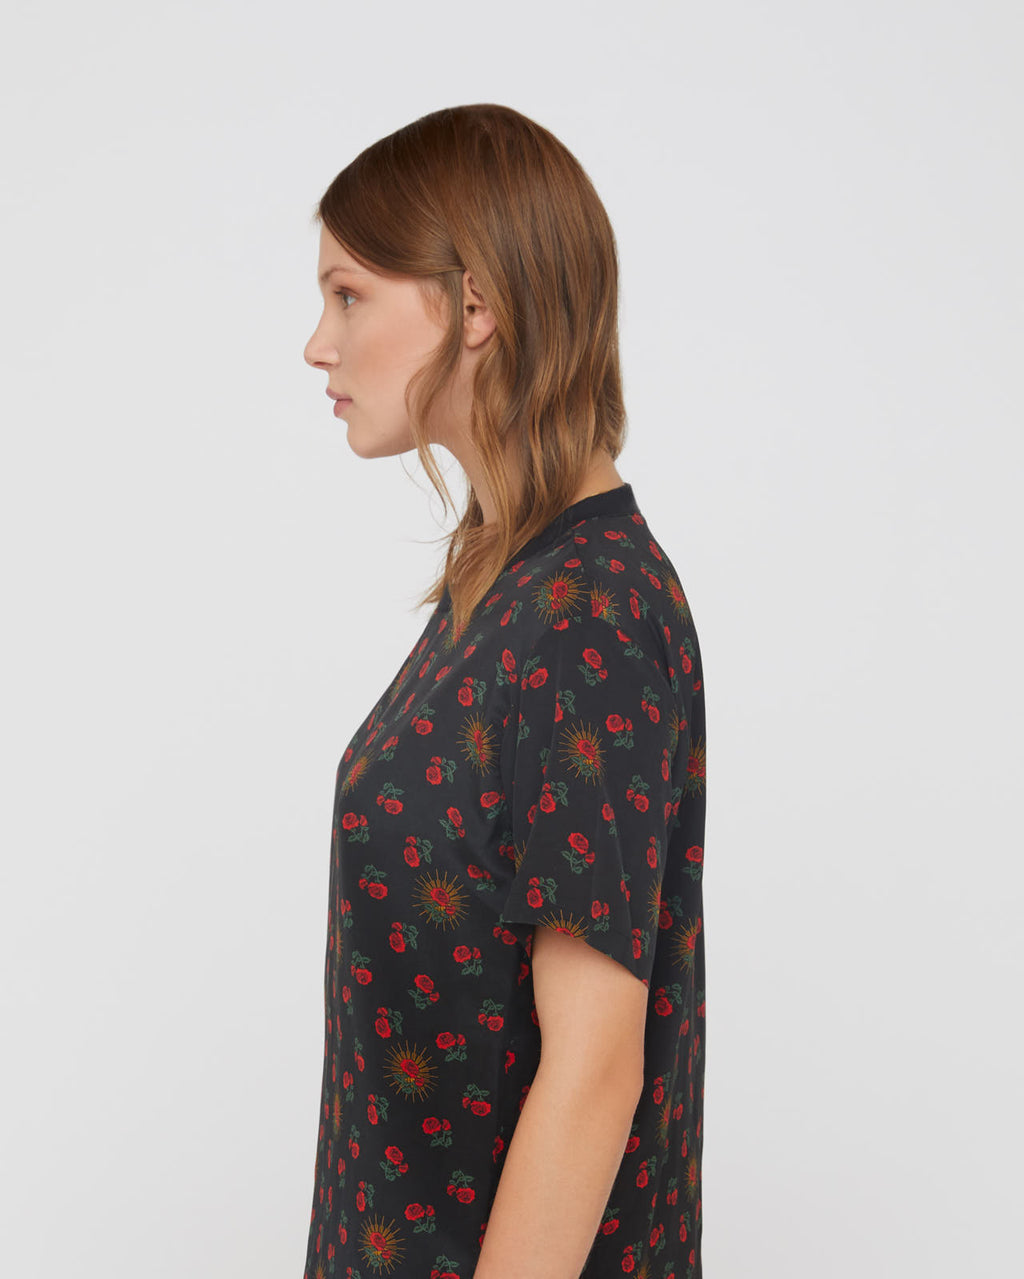 The Myra Shirt in Red Calico Rose